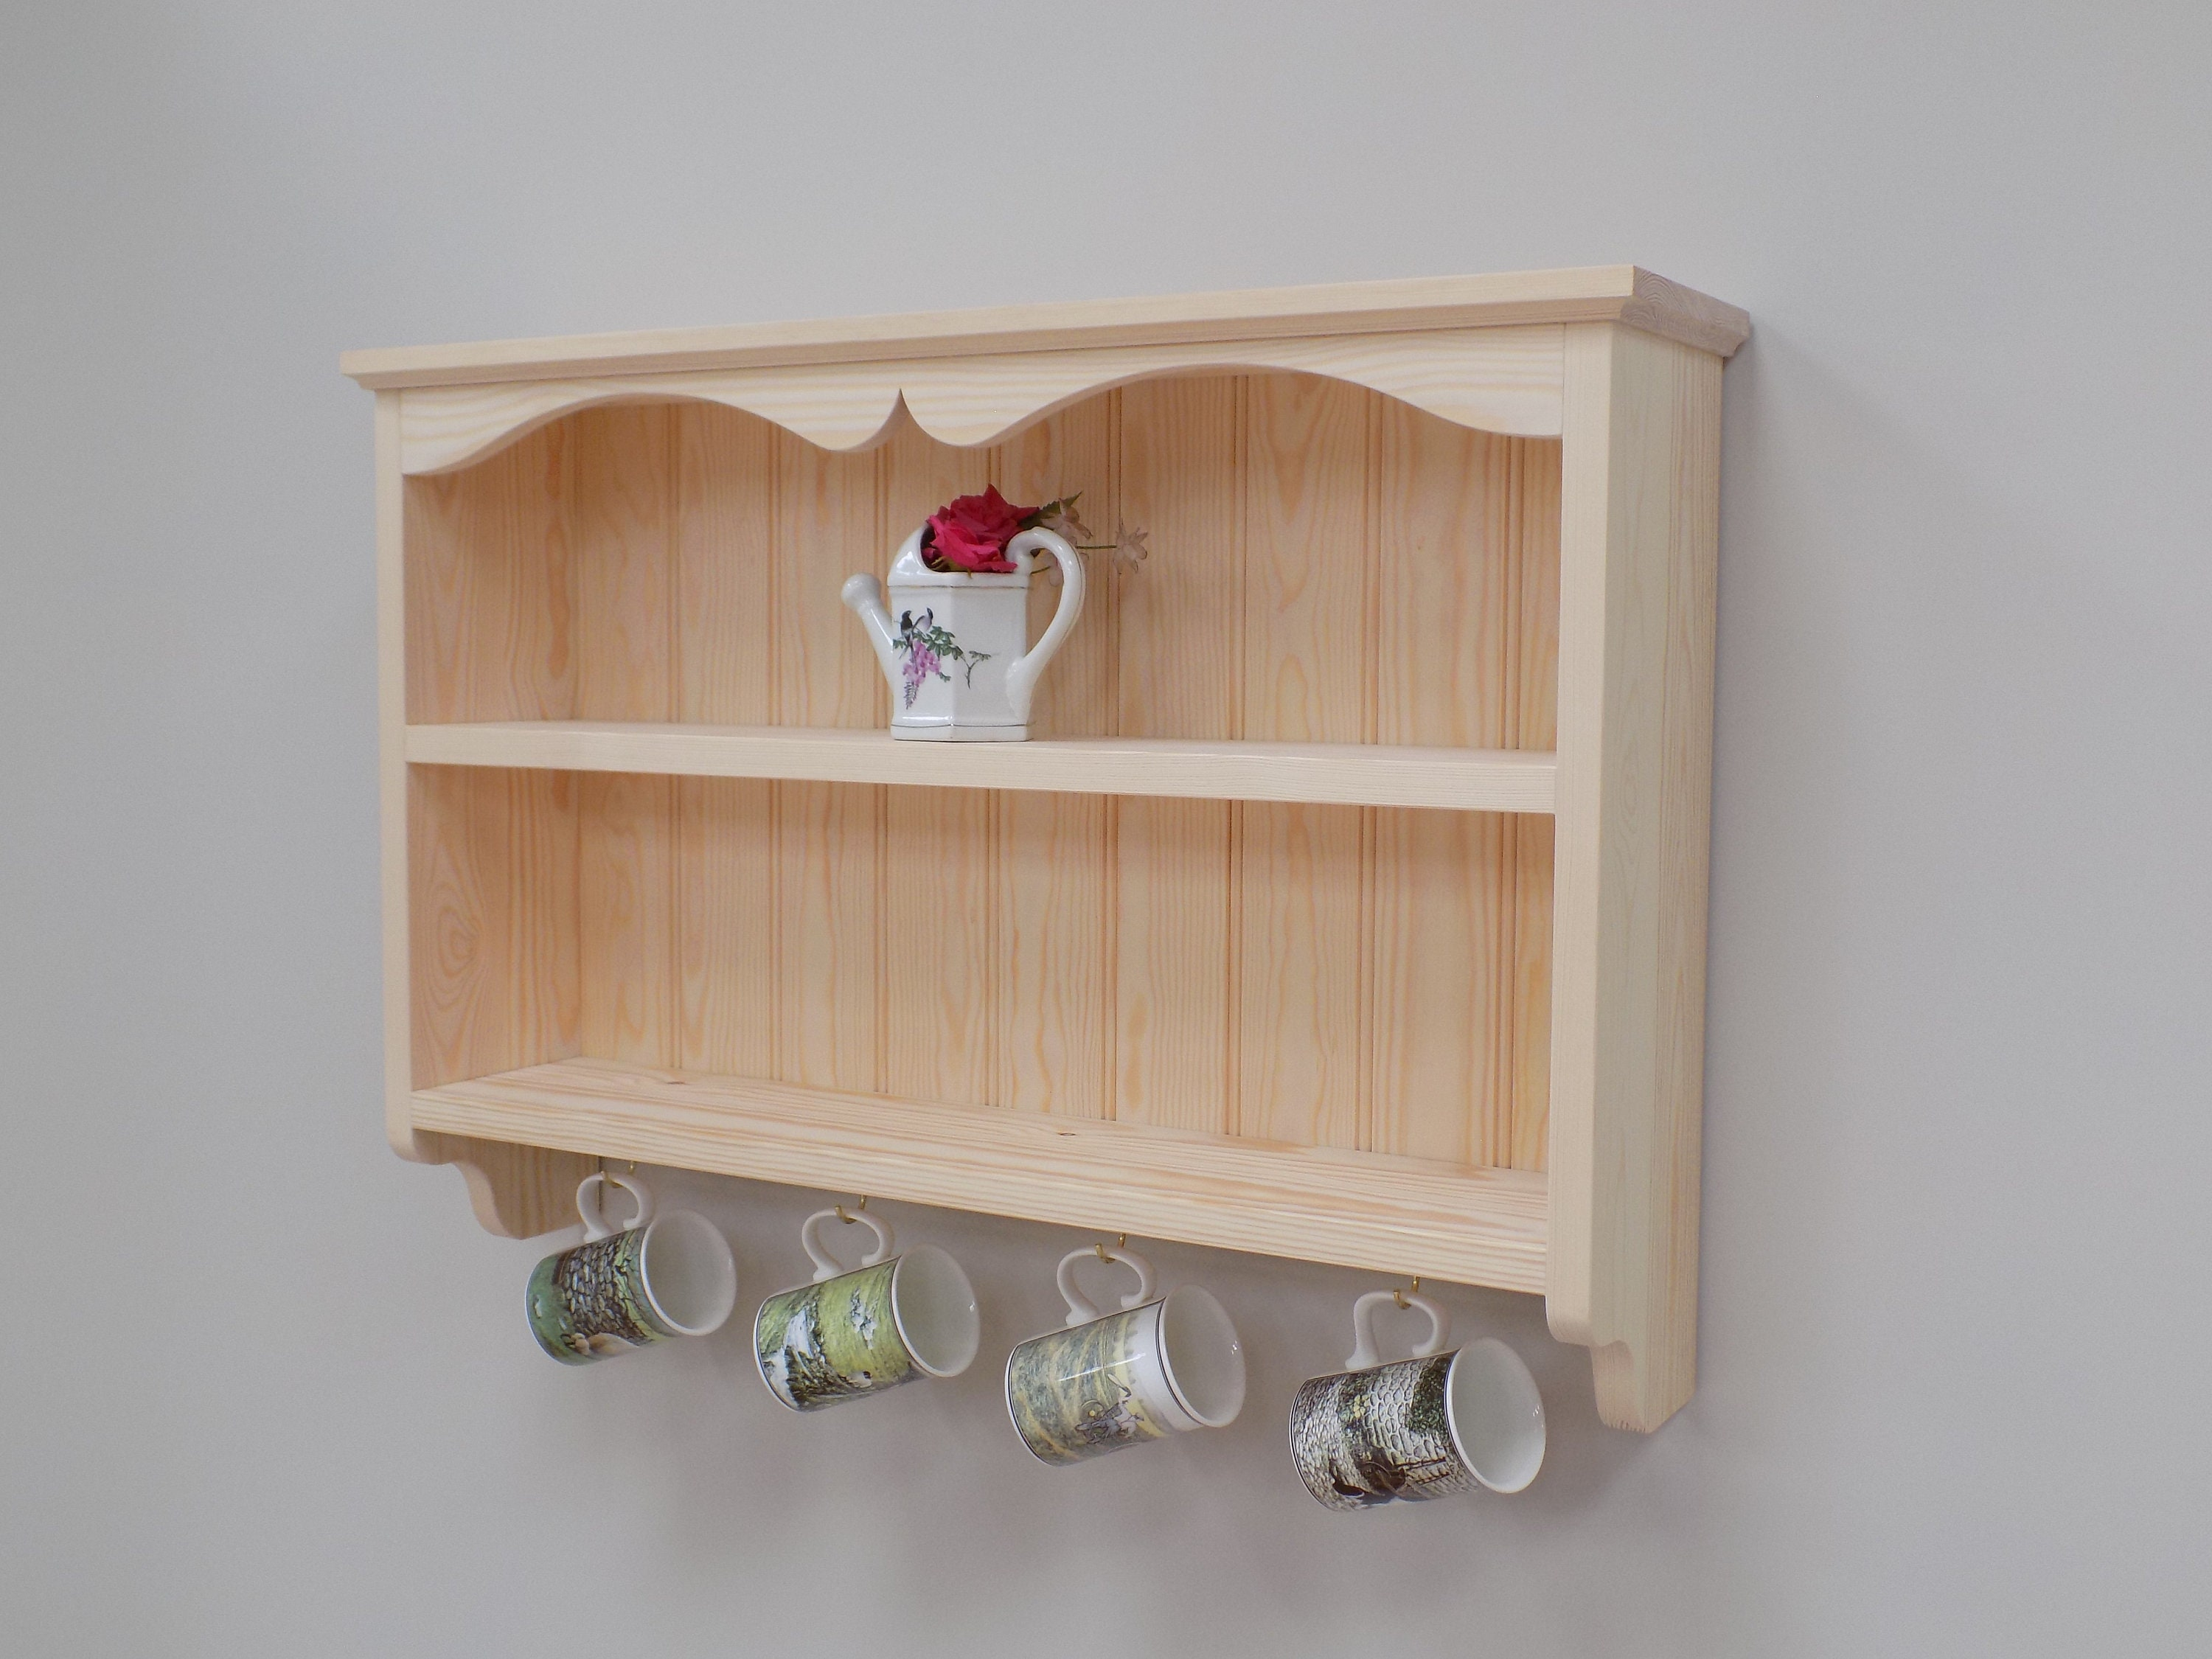 Kitchen Shelves Pine Wall Shelf Unit Kitchen Shelves With Hooks